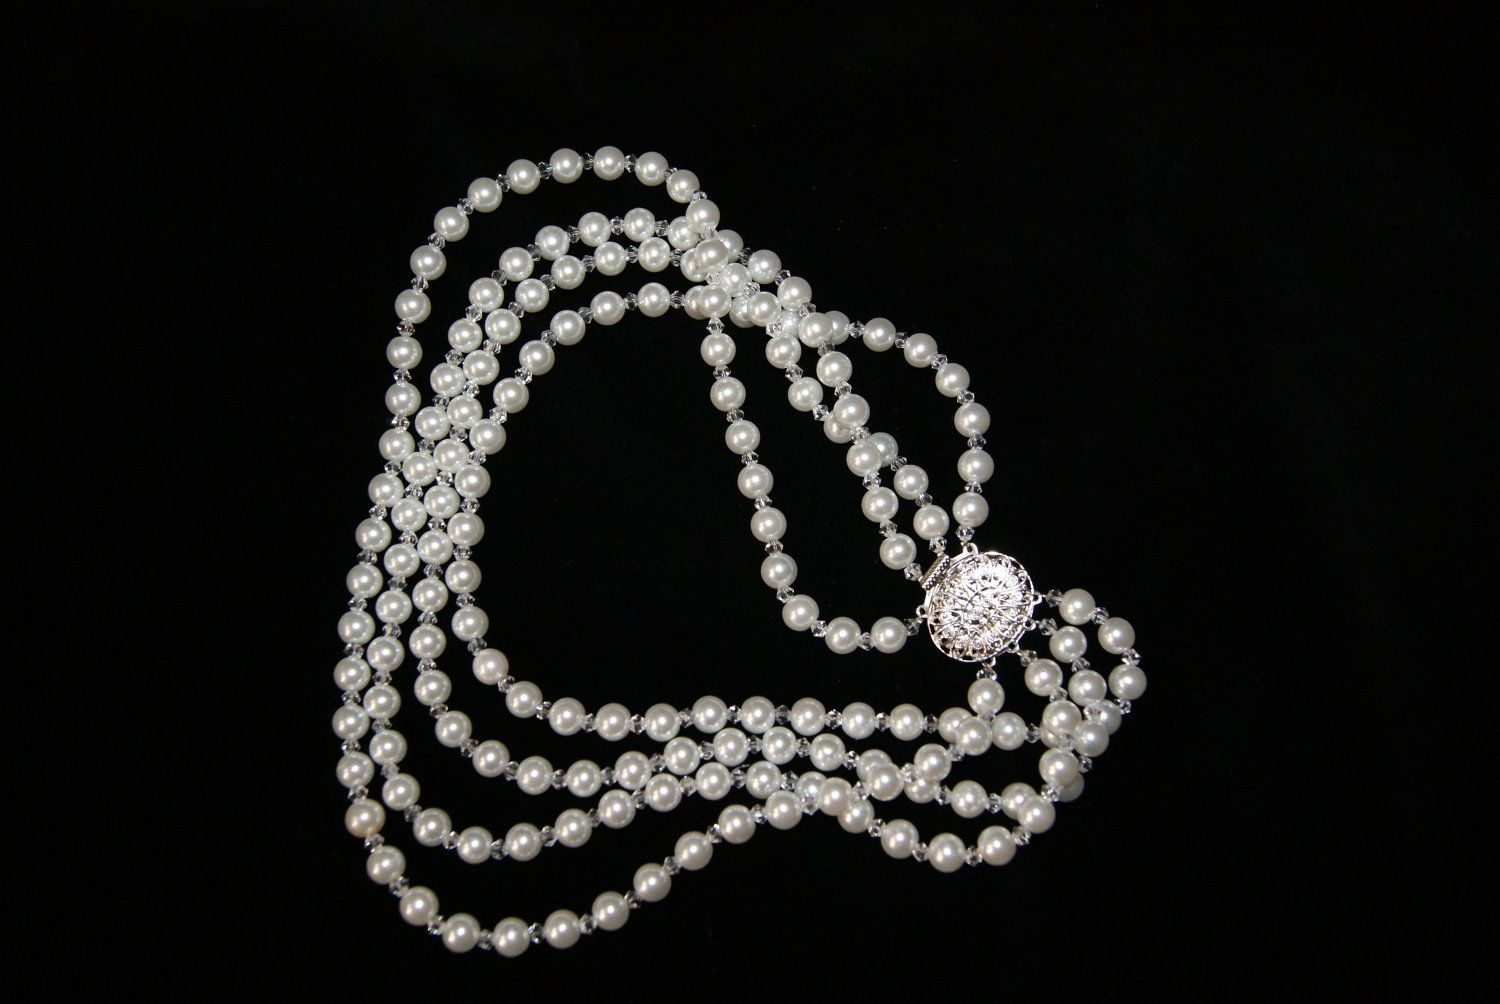 Vintage style four strand handmade bridal pearl and crystals necklace